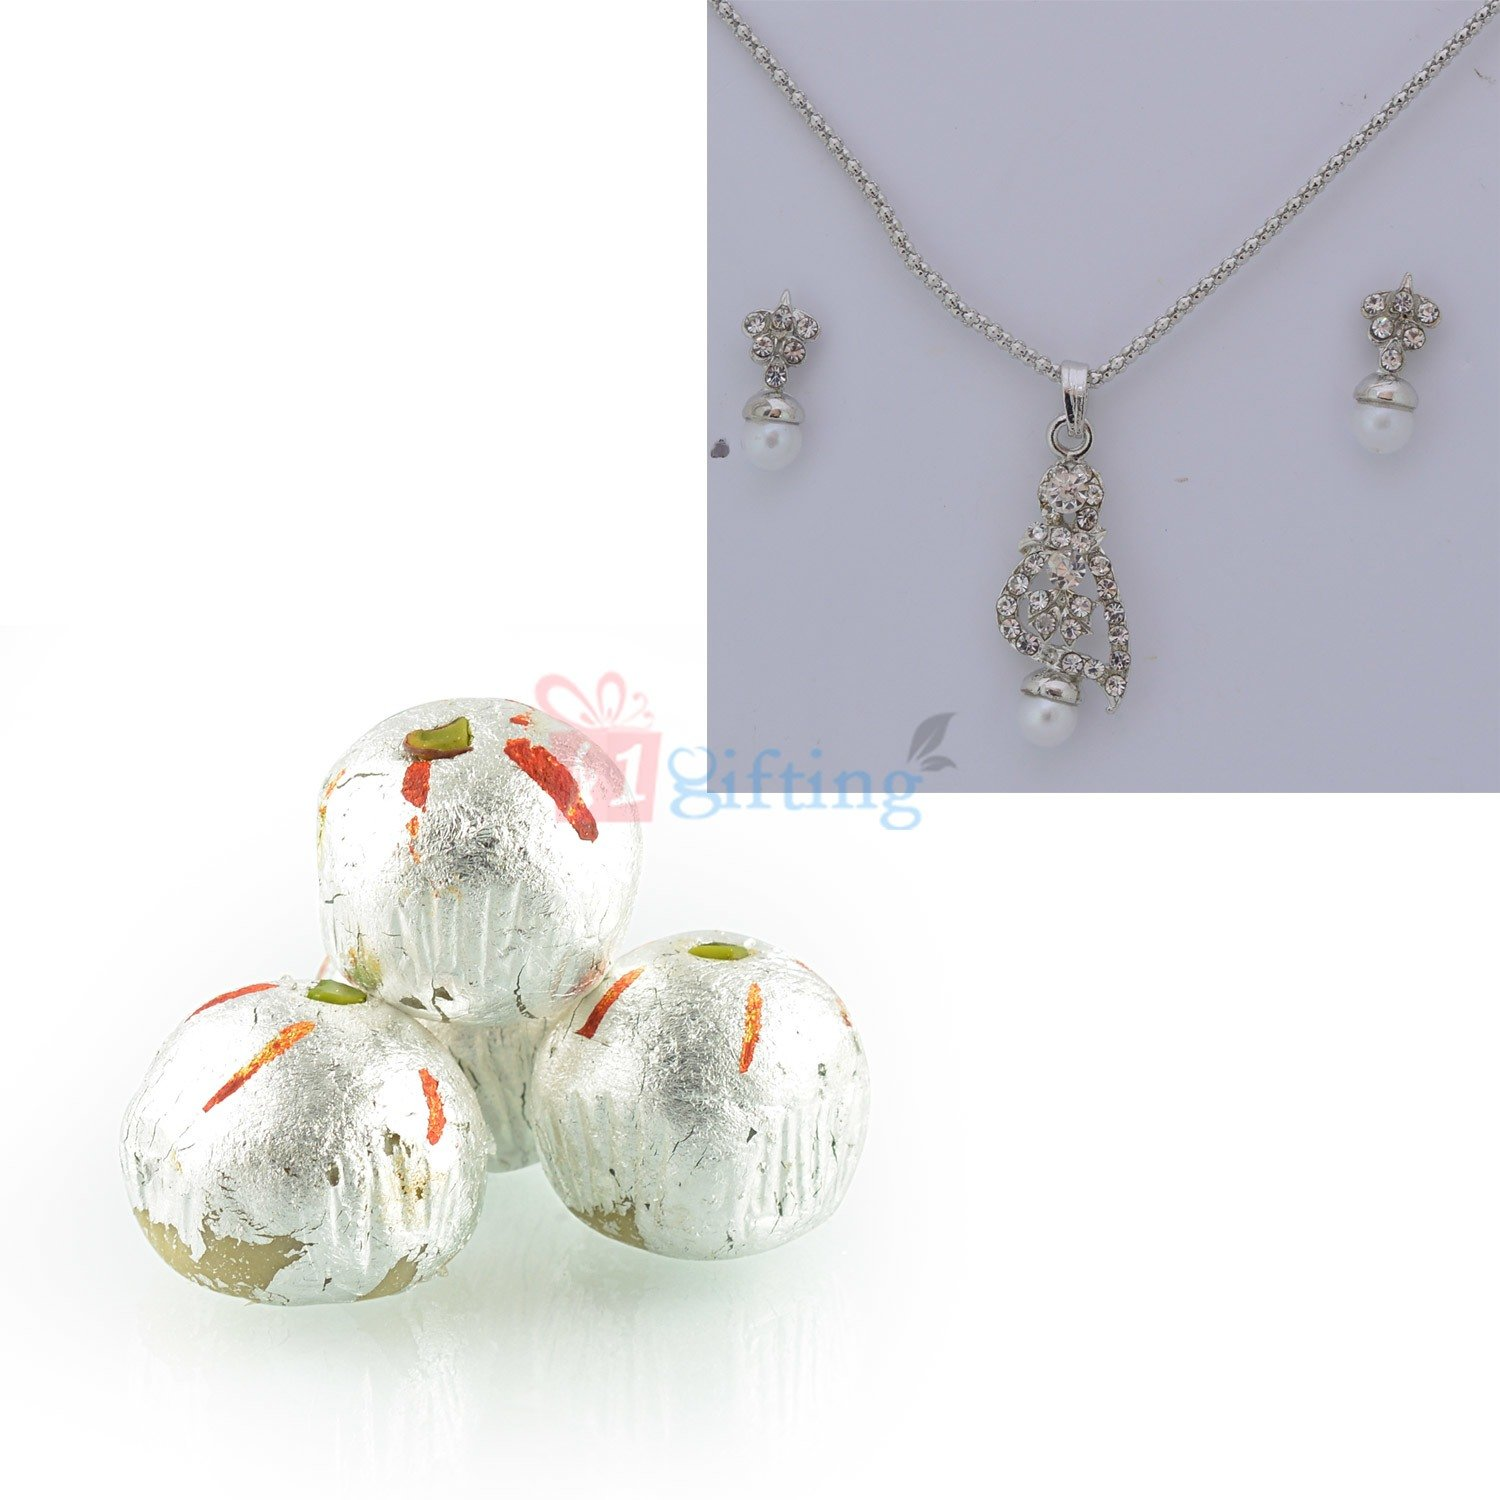 Necklace with Earing and Kaju Laddu Gift Hamper